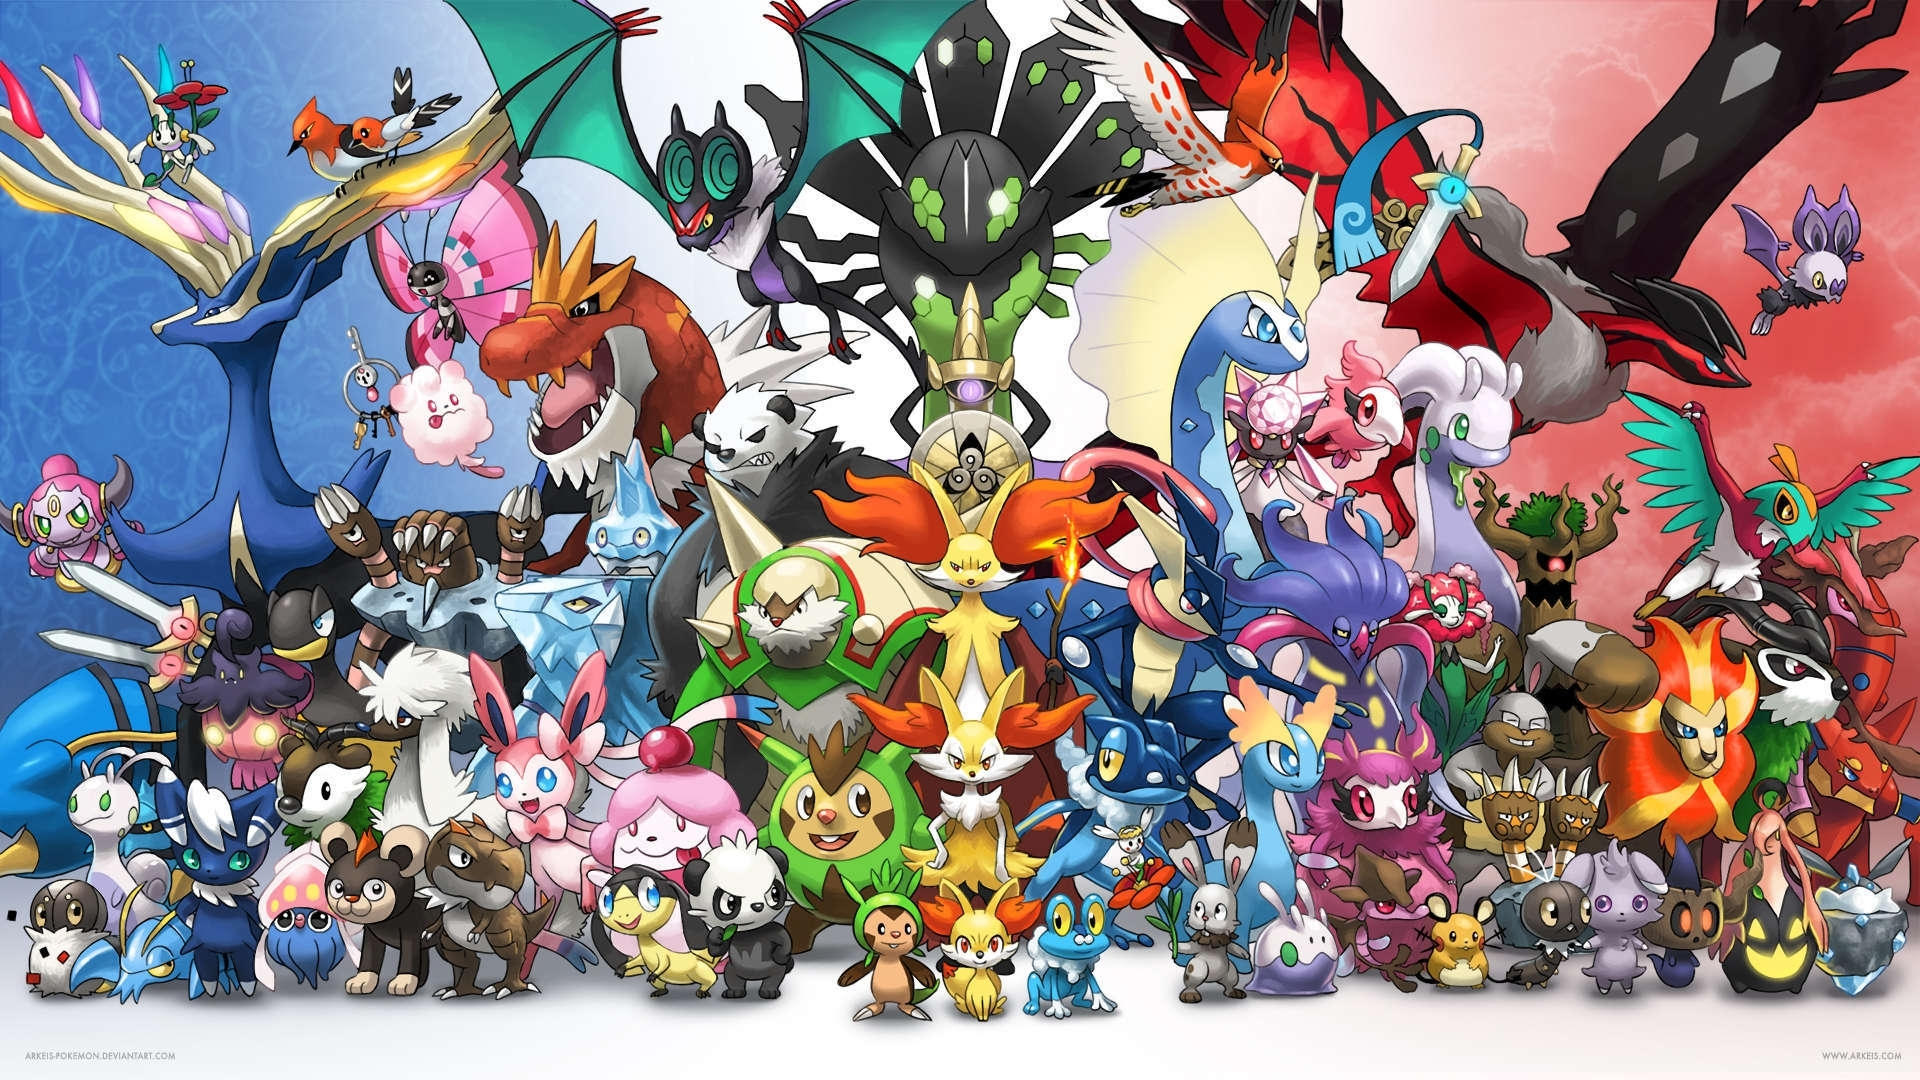 wallpaper of pokemon hd cartoons high resolution mobile phones